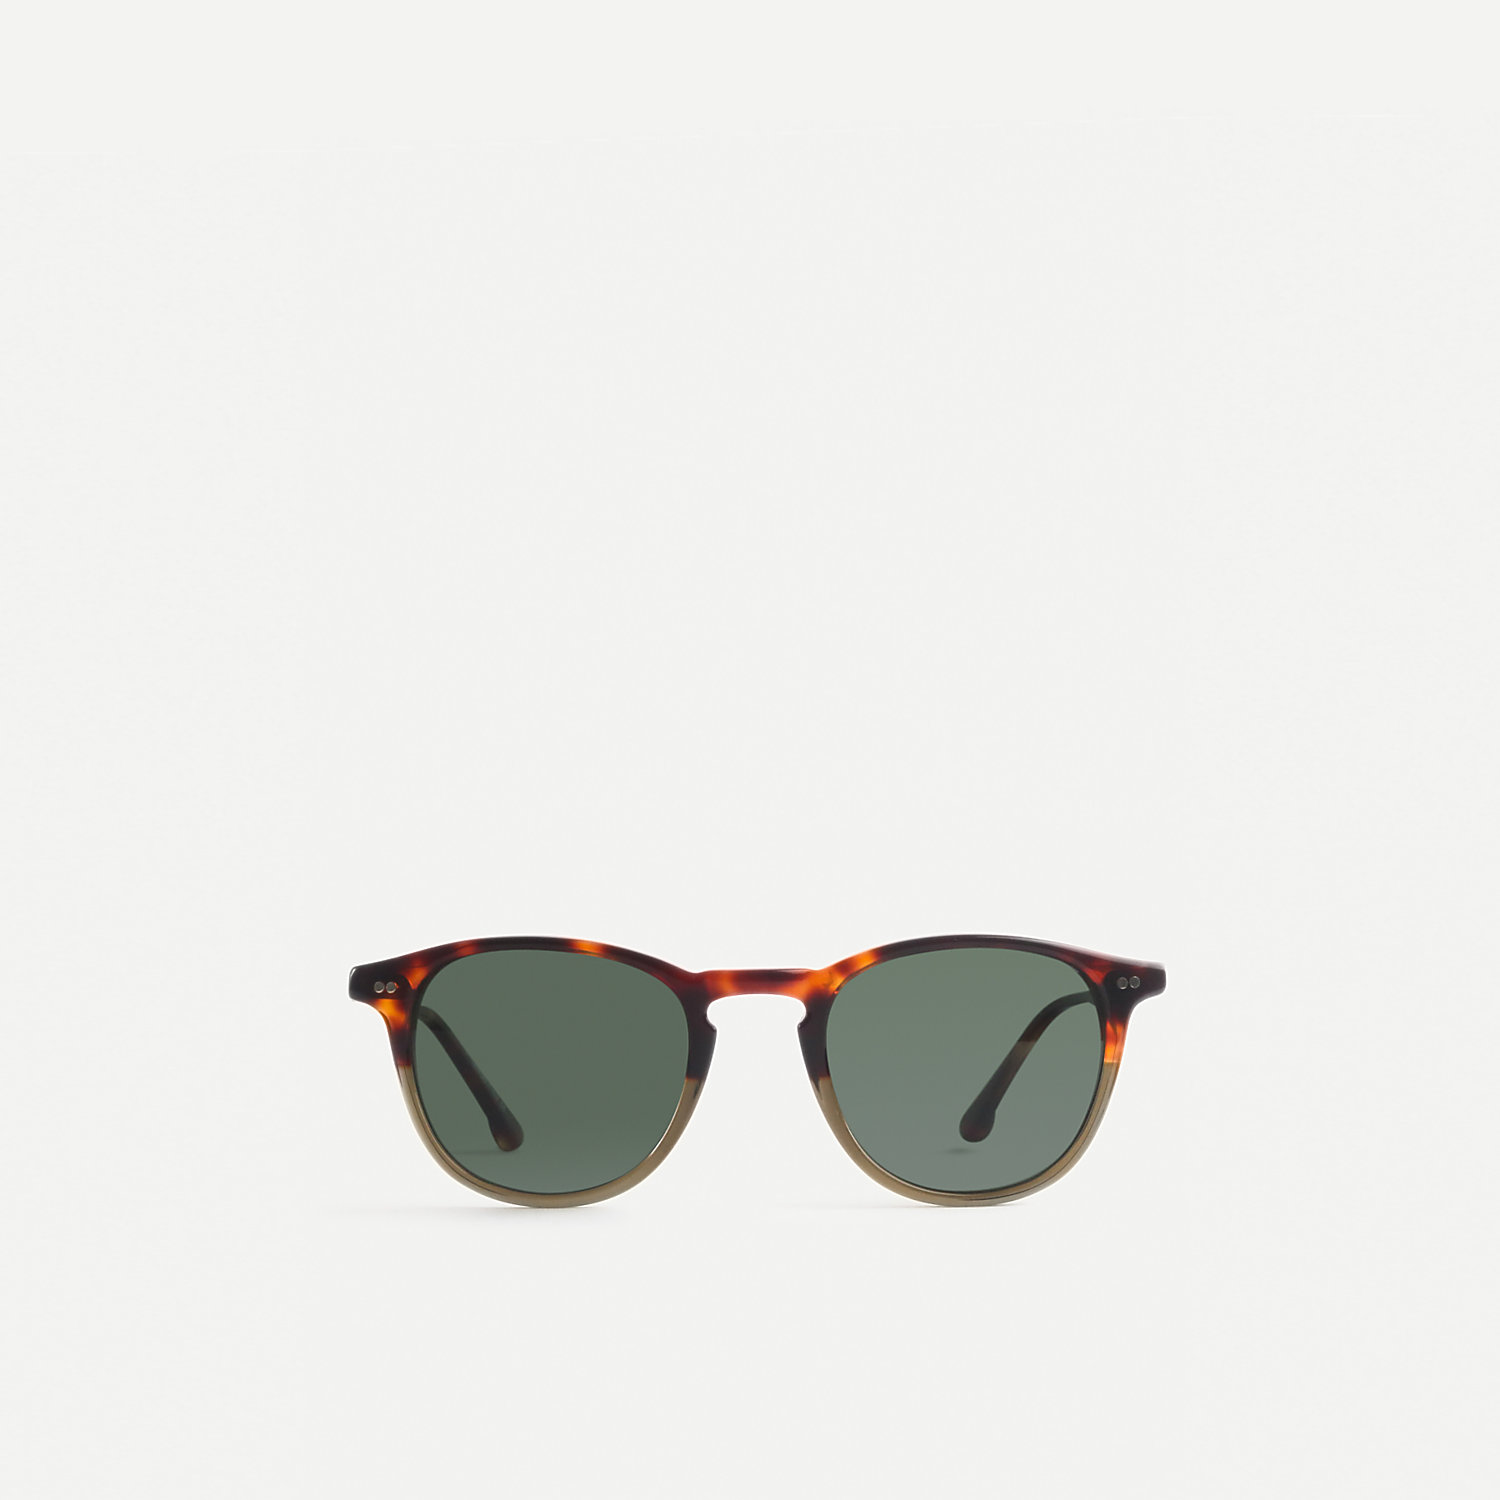 FOREST TORTOISE MAYHEW SUNGLASSES